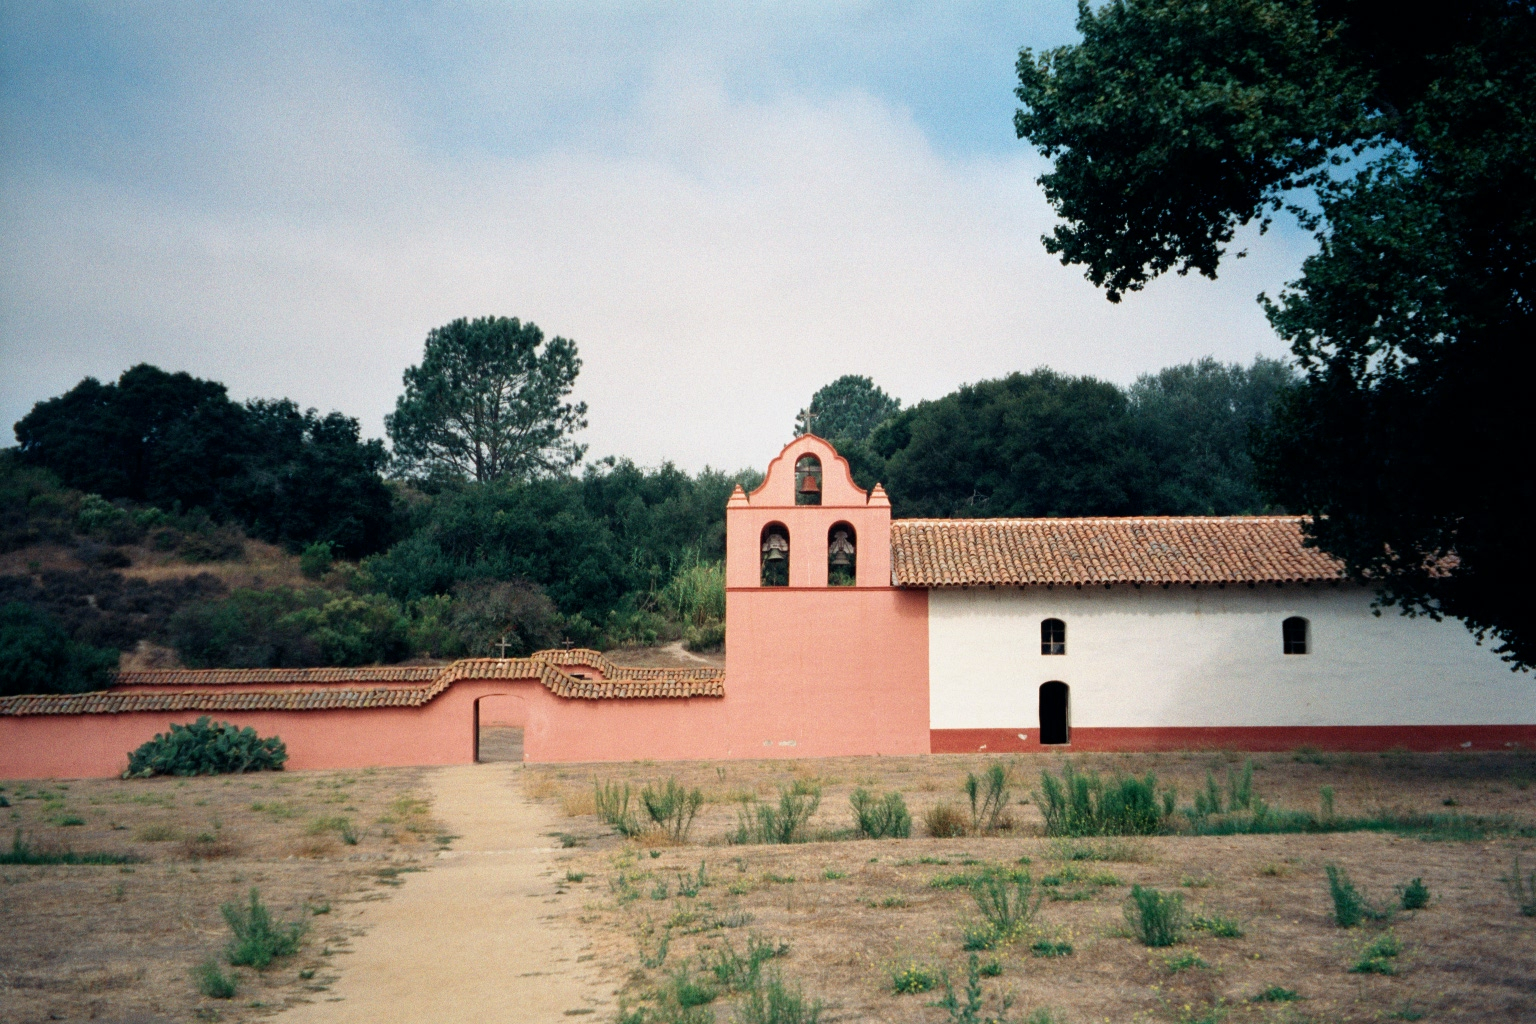 Mission La Purisima